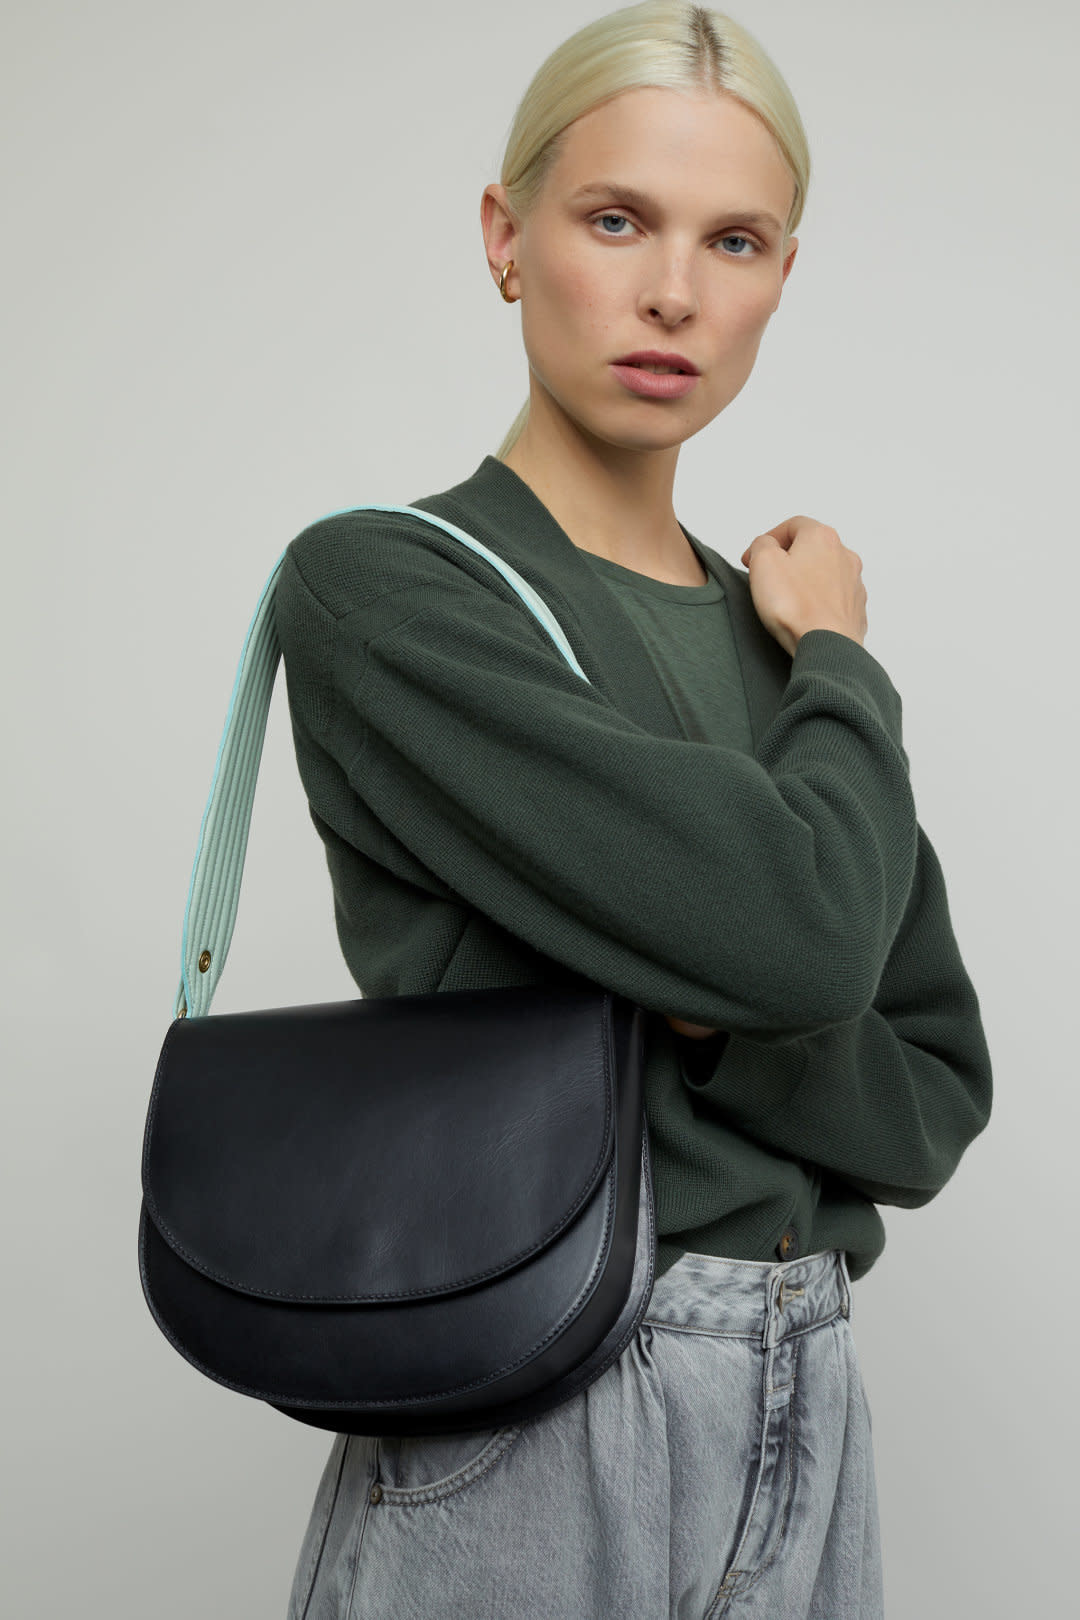 Ally M bag Black leather incl strap-9